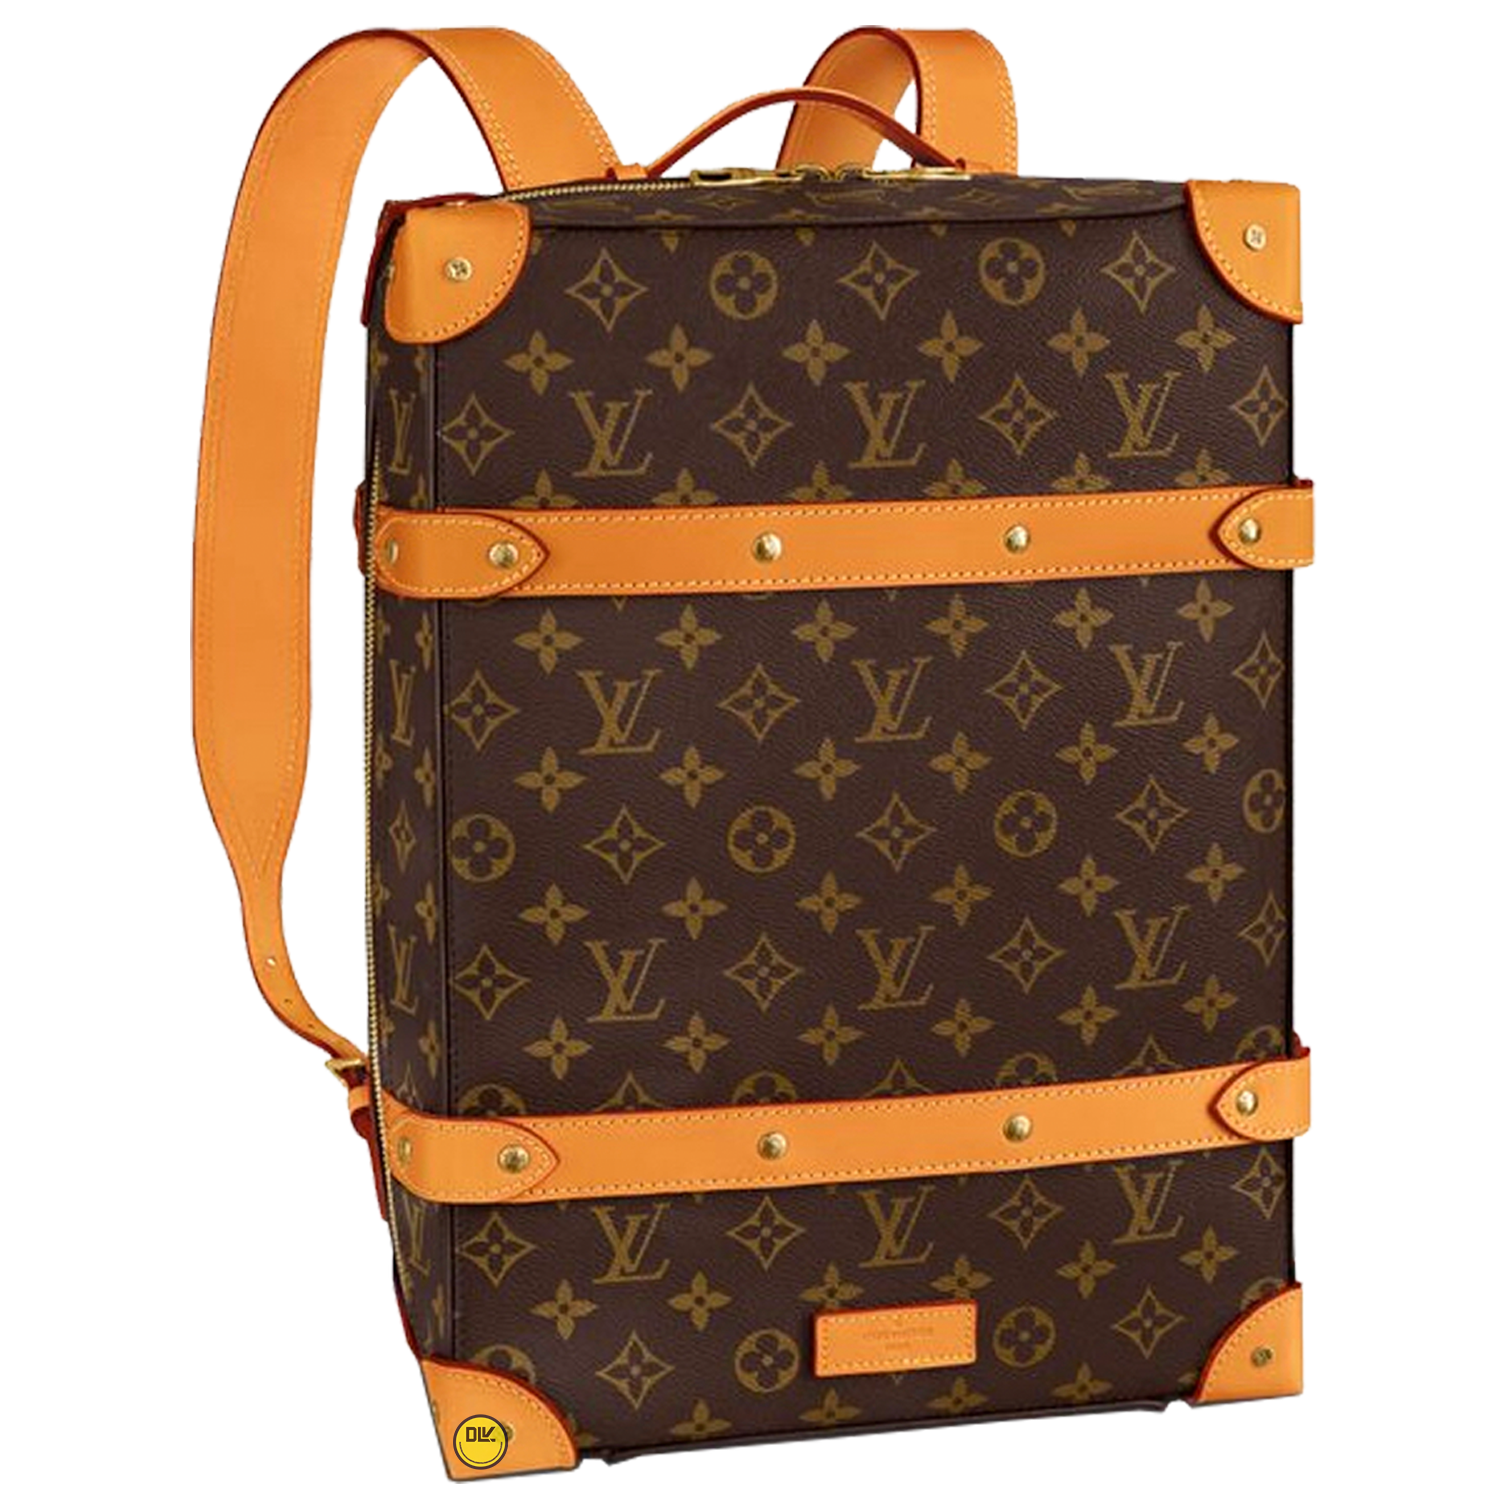 SOFT TRUNK BACKPACK MM - €3900 $5800M44749MONOGRAM LEGACY